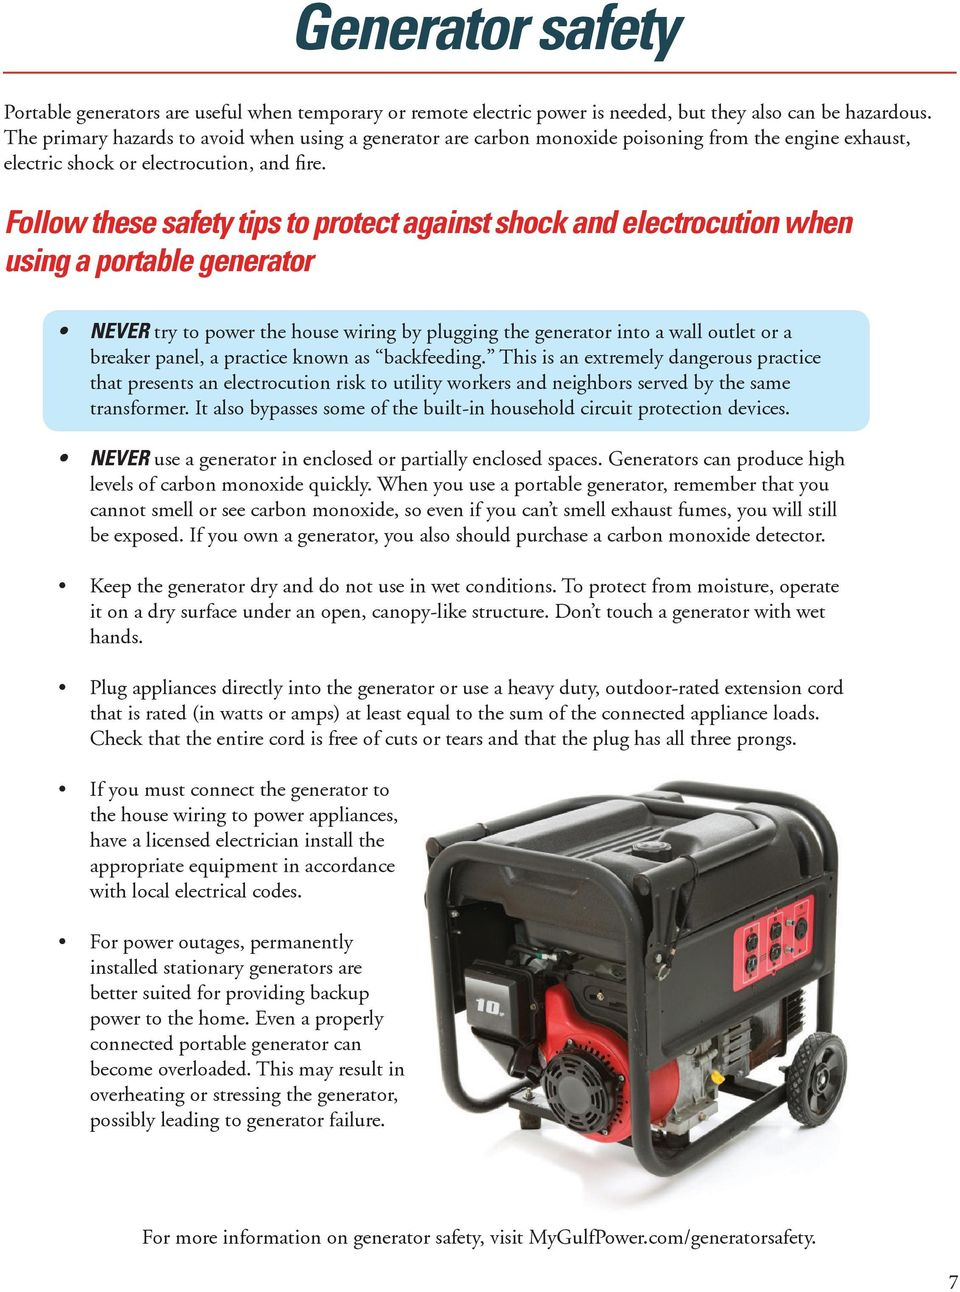 Follow these safety tips to protect against shock and electrocution when using a portable generator NEVER try to power the house wiring by plugging the generator into a wall outlet or a breaker